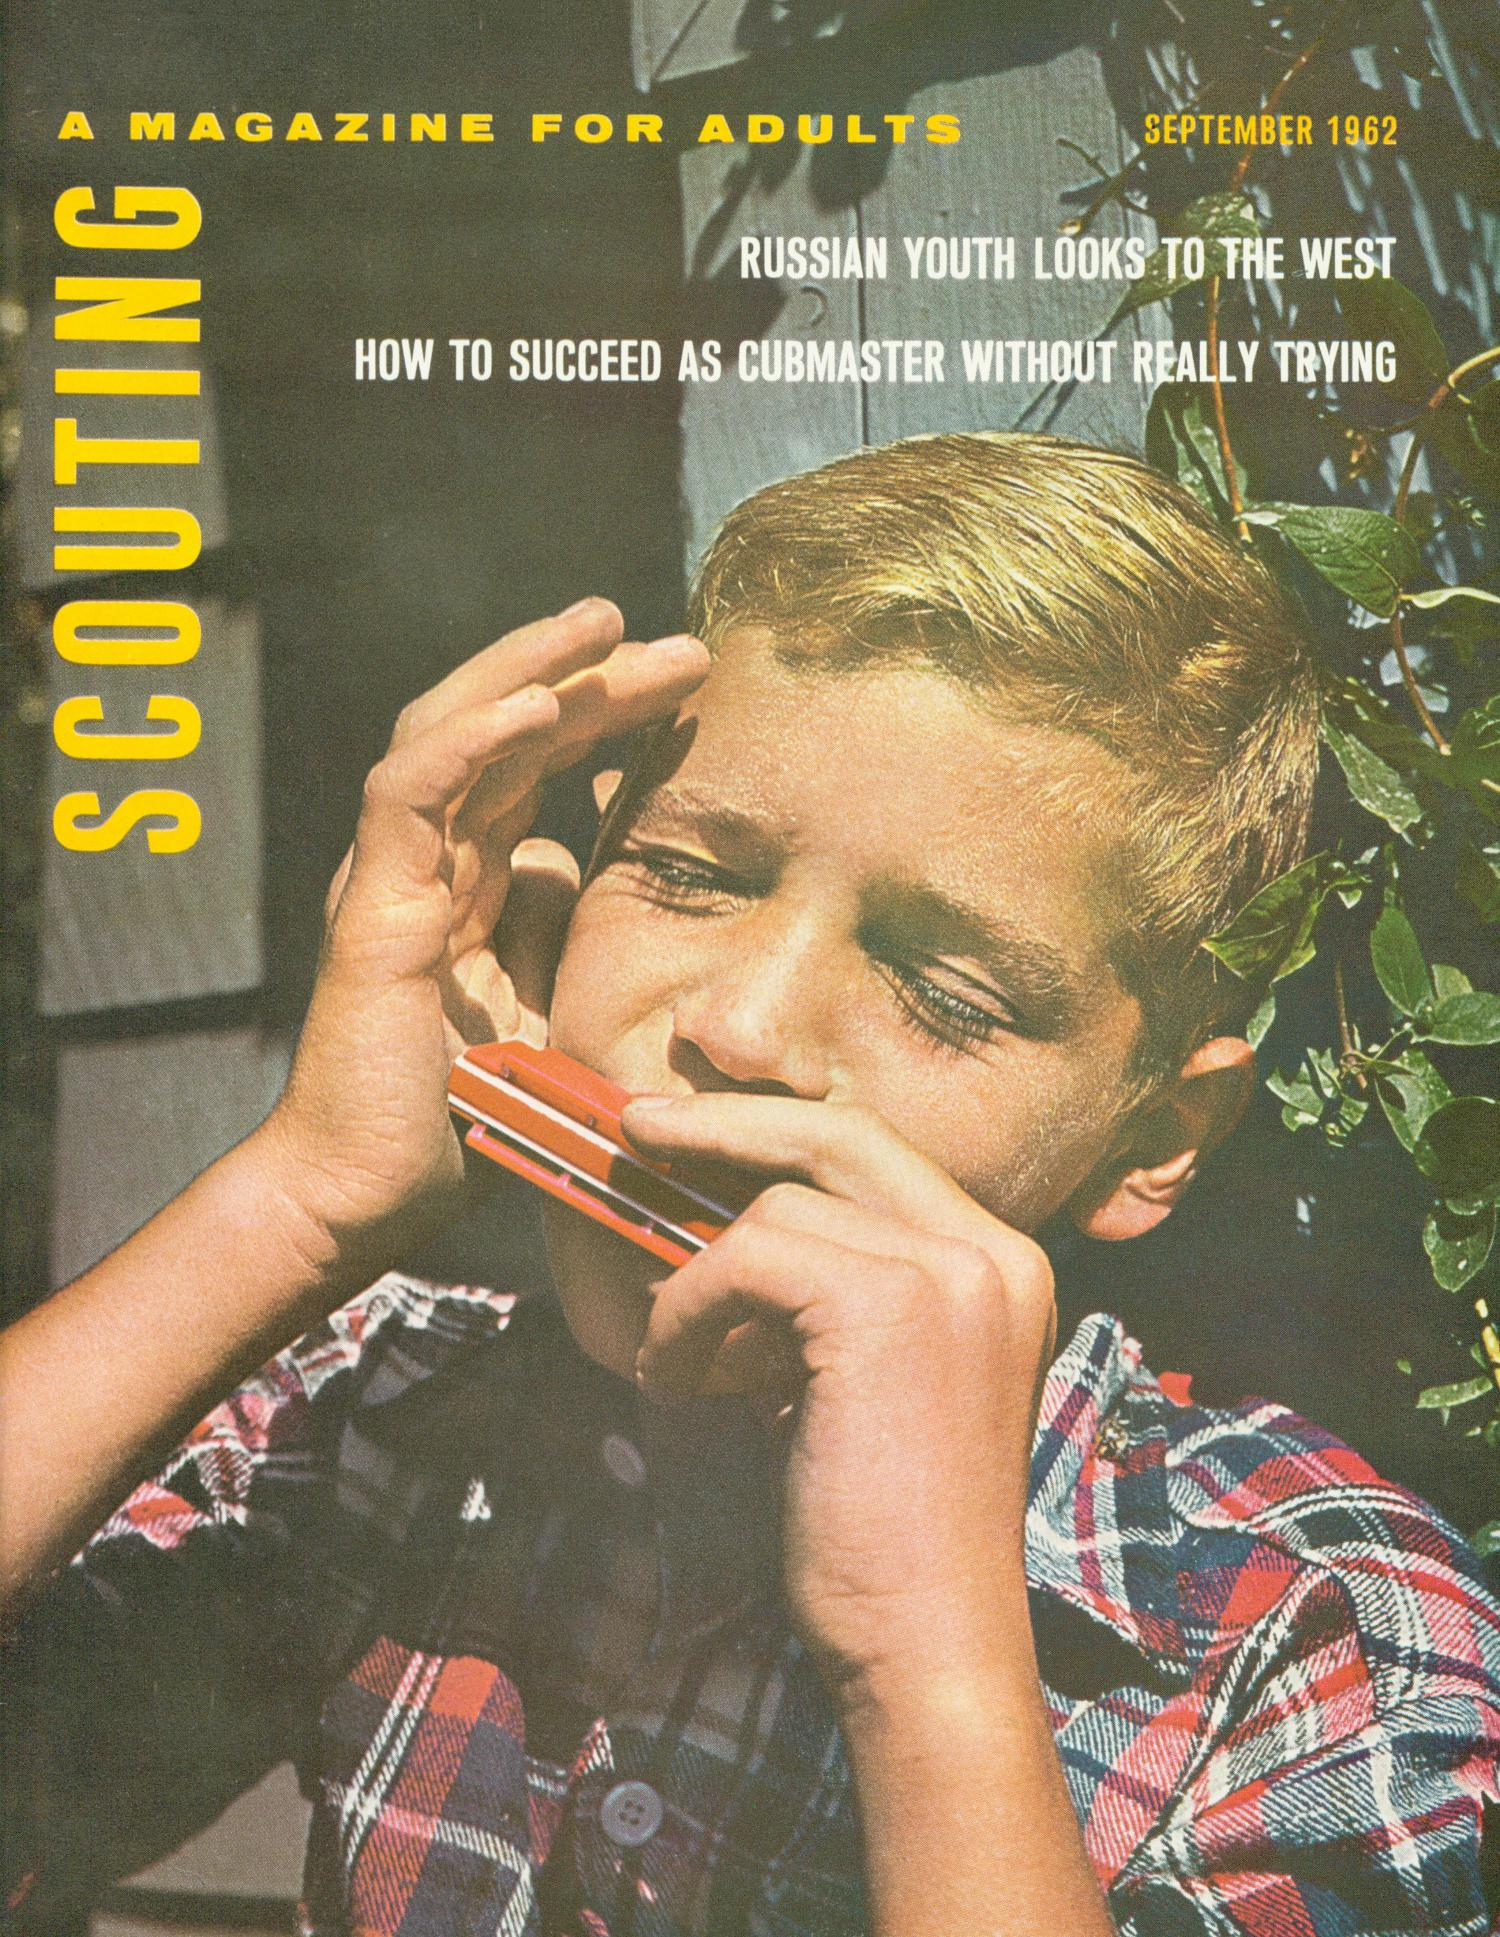 Scouting, Volume 50, Number 7, September 1962                                                                                                      Front Cover